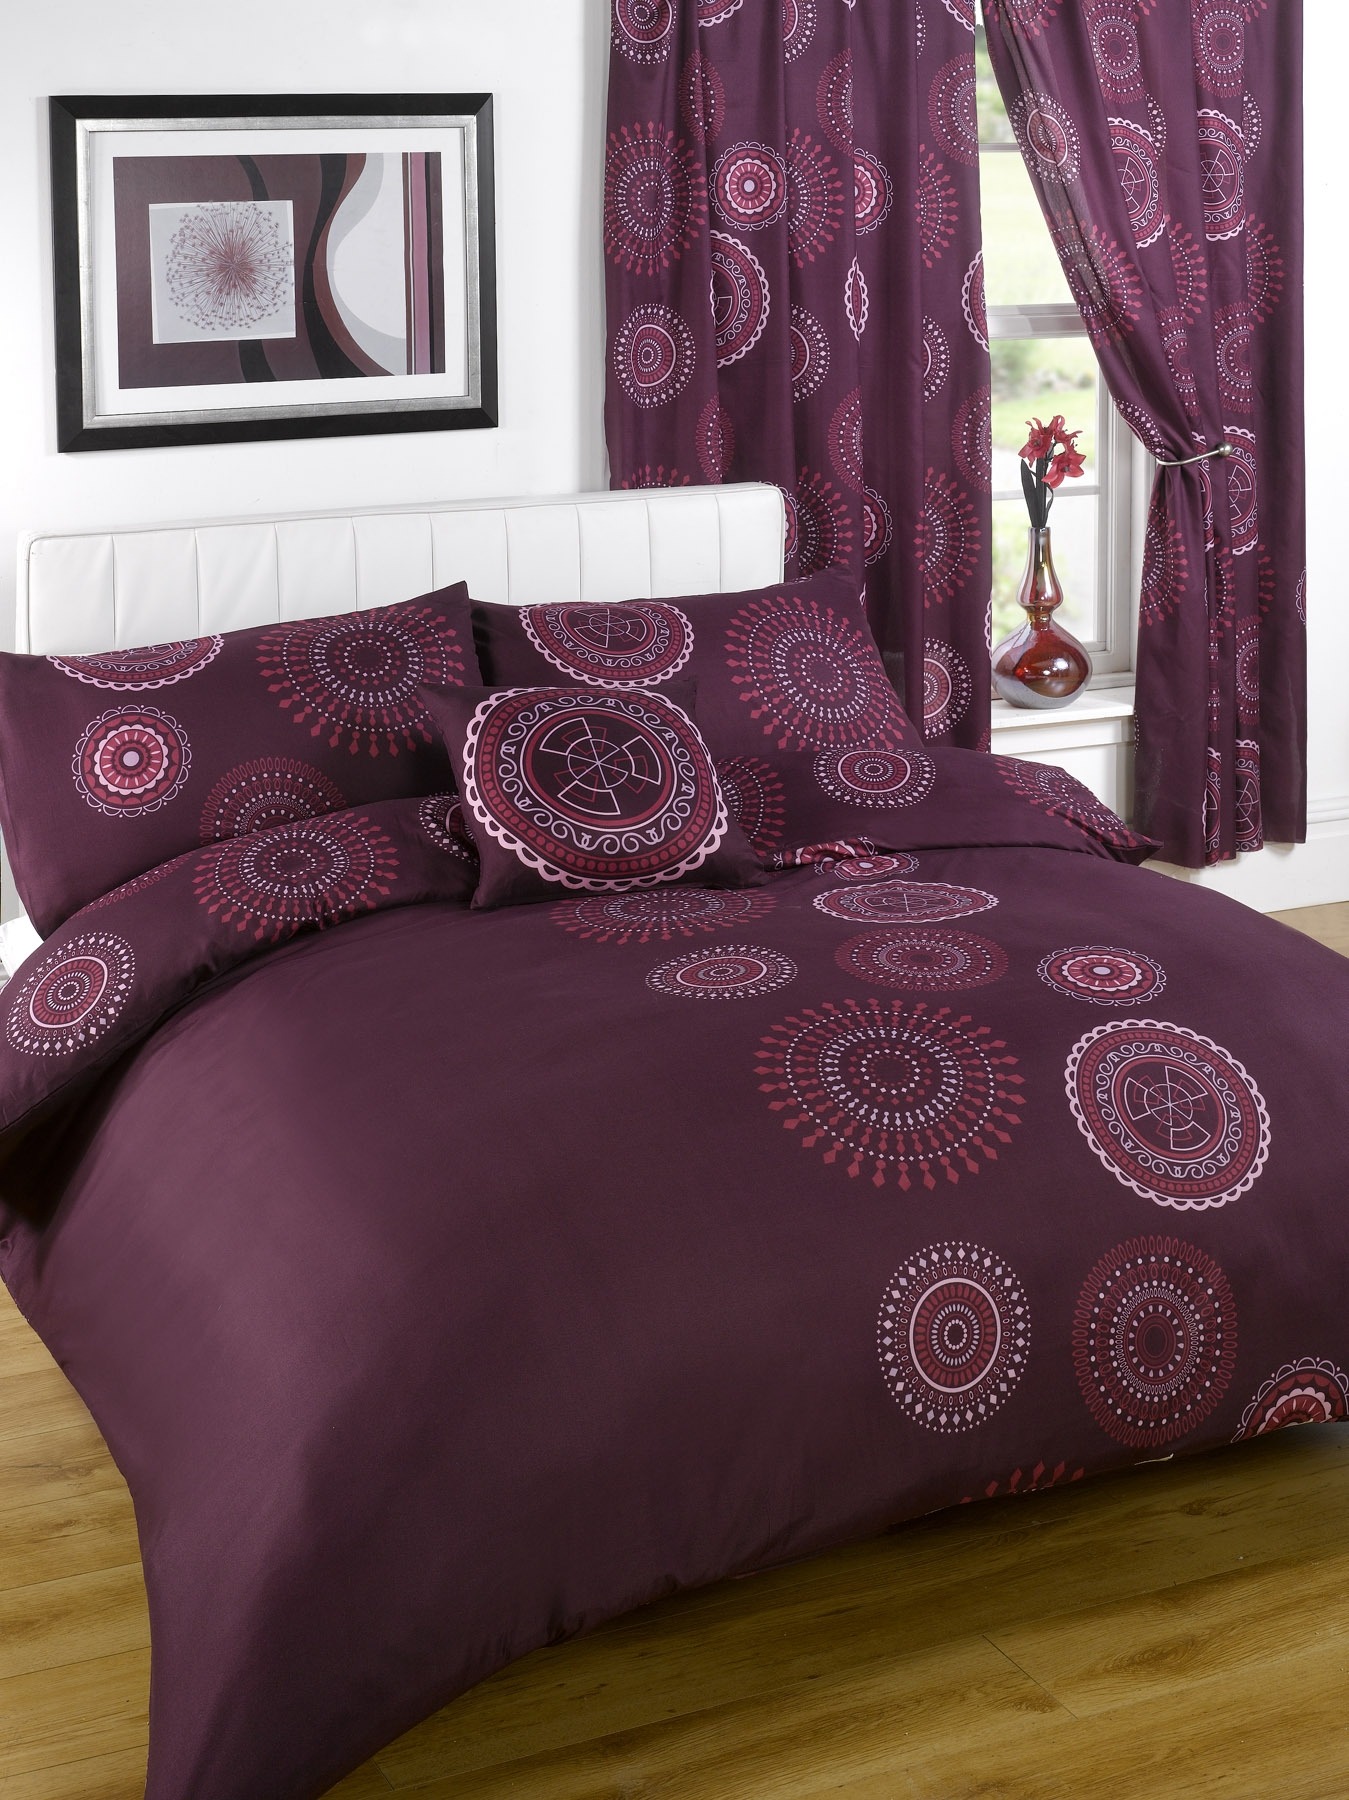 Bumper duvet complete bedding set with matching curtains kasbar single for Complete bedroom sets with curtains